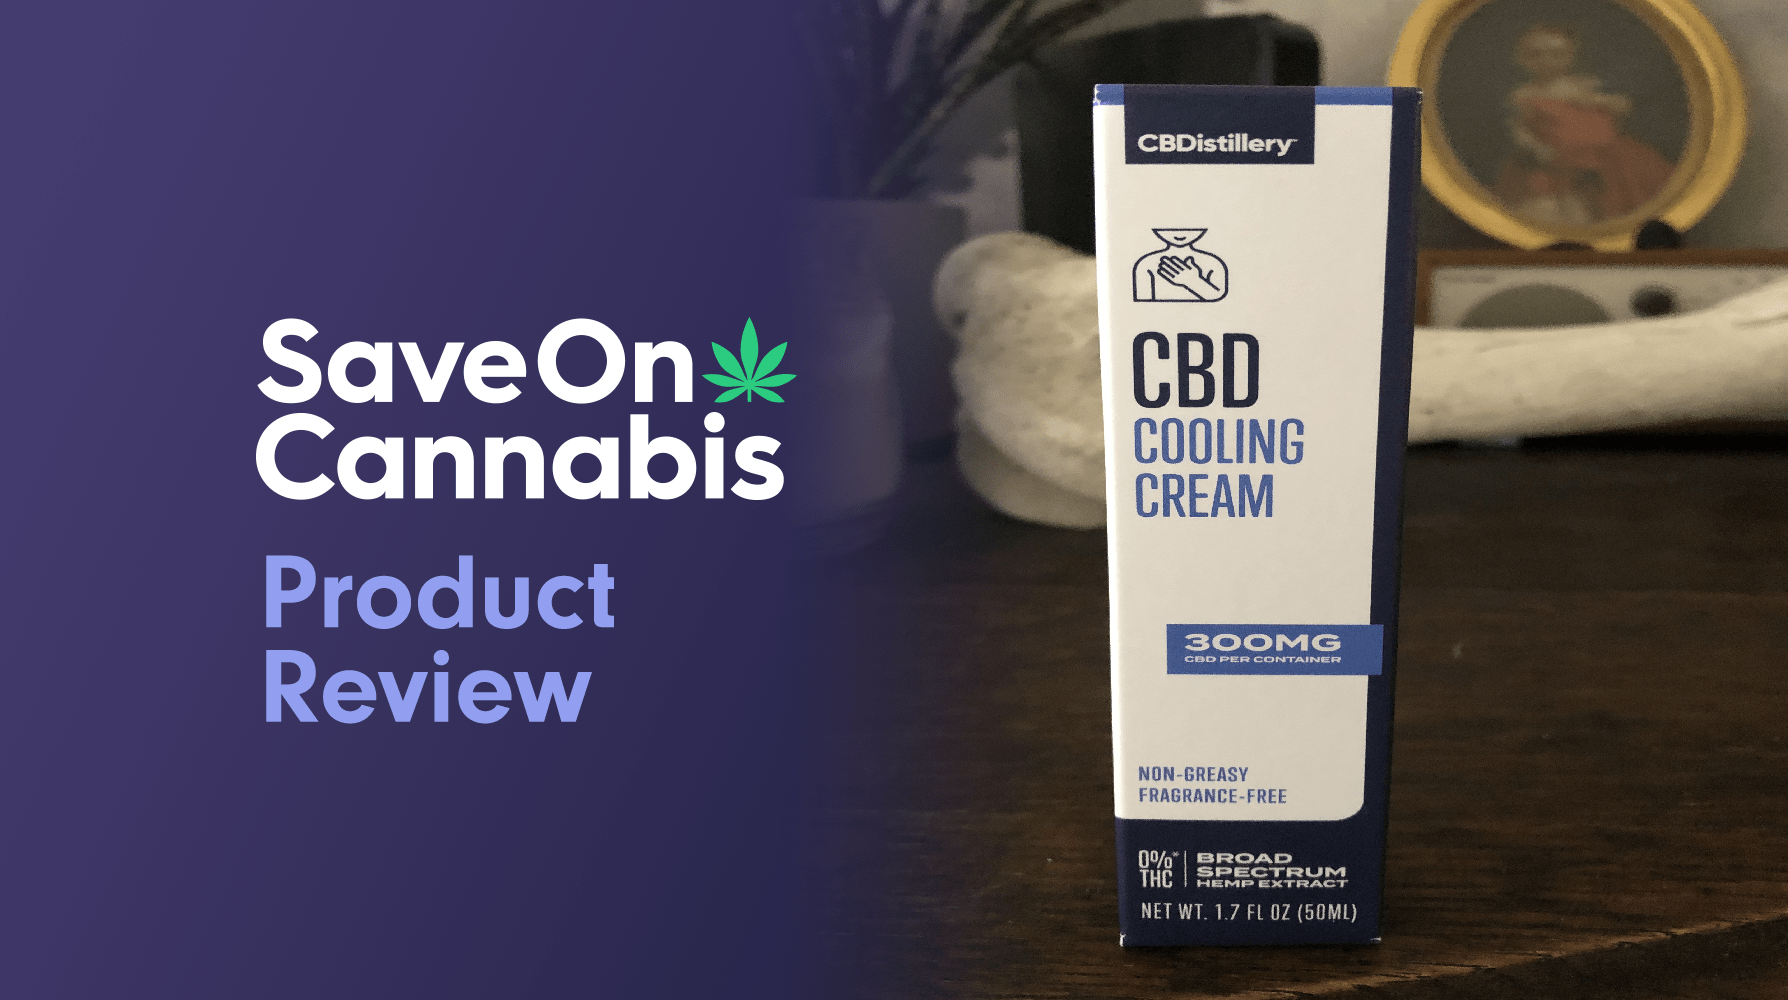 Cbdistillery CBD Cooling Cream Save On Cannabis Review Website